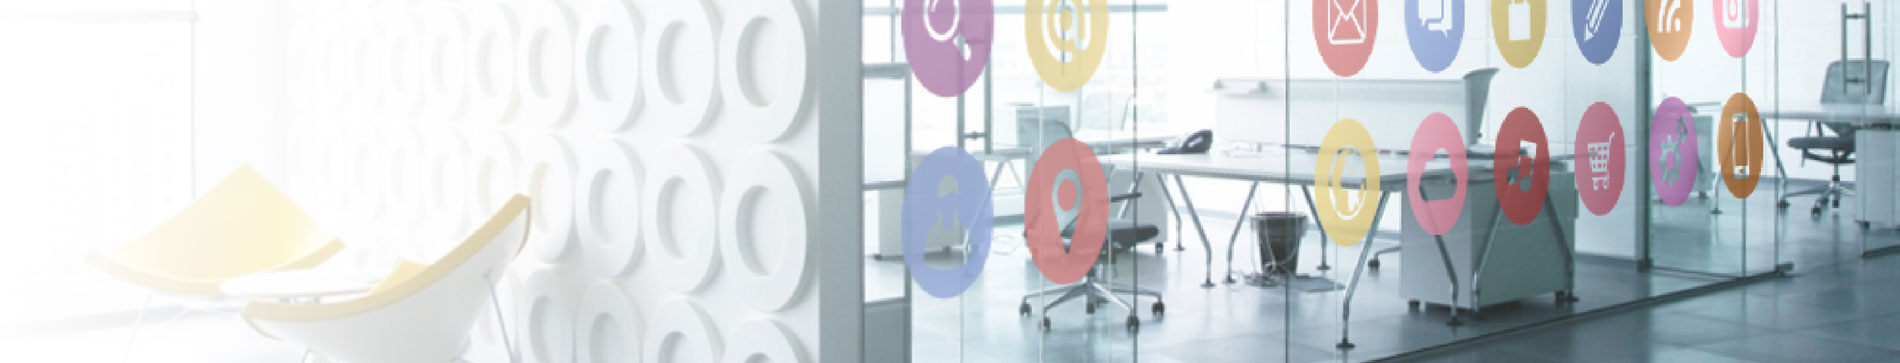 Impersol Produtos Arquitectura Decoracao Whiteboards